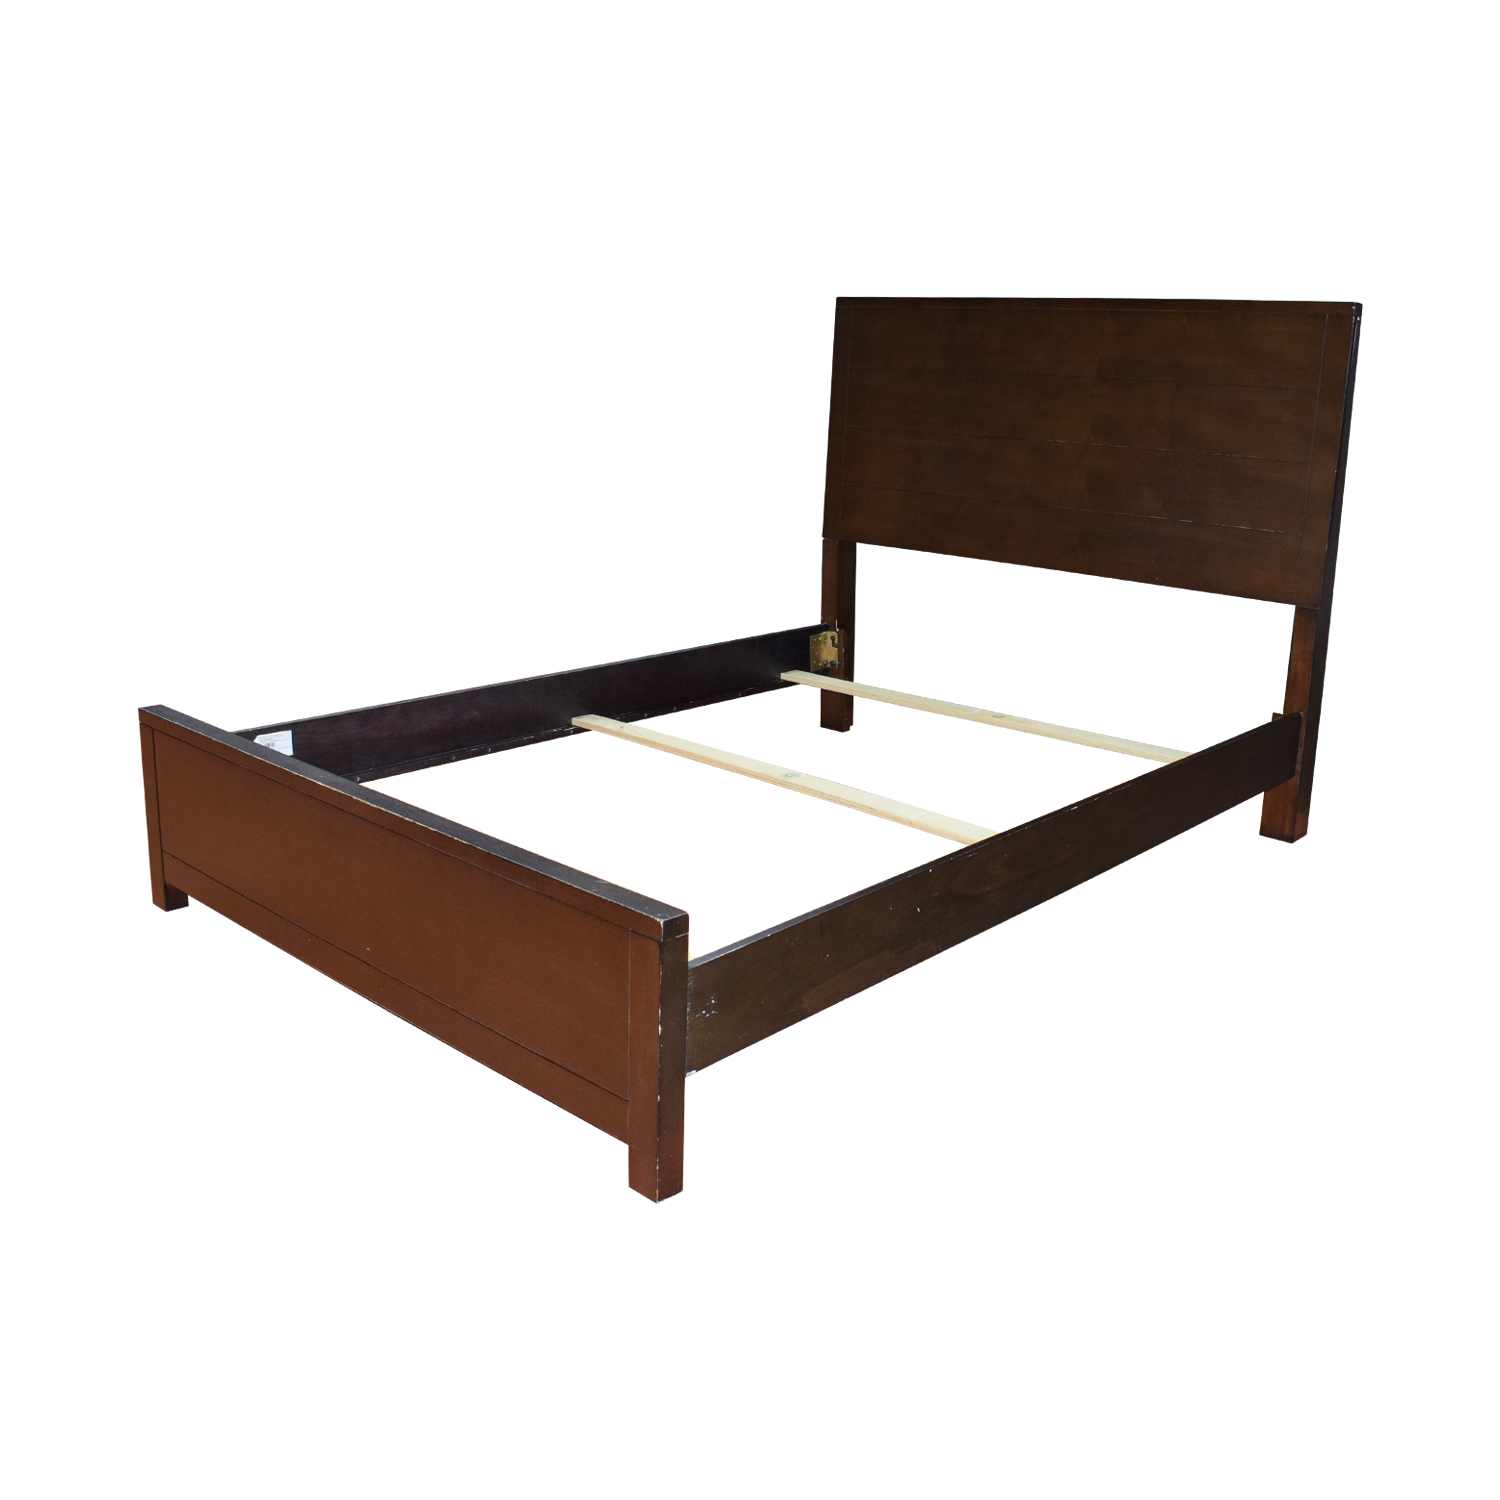 macys bed frames 79 macy s macy s tribeca bed frame beds 12185